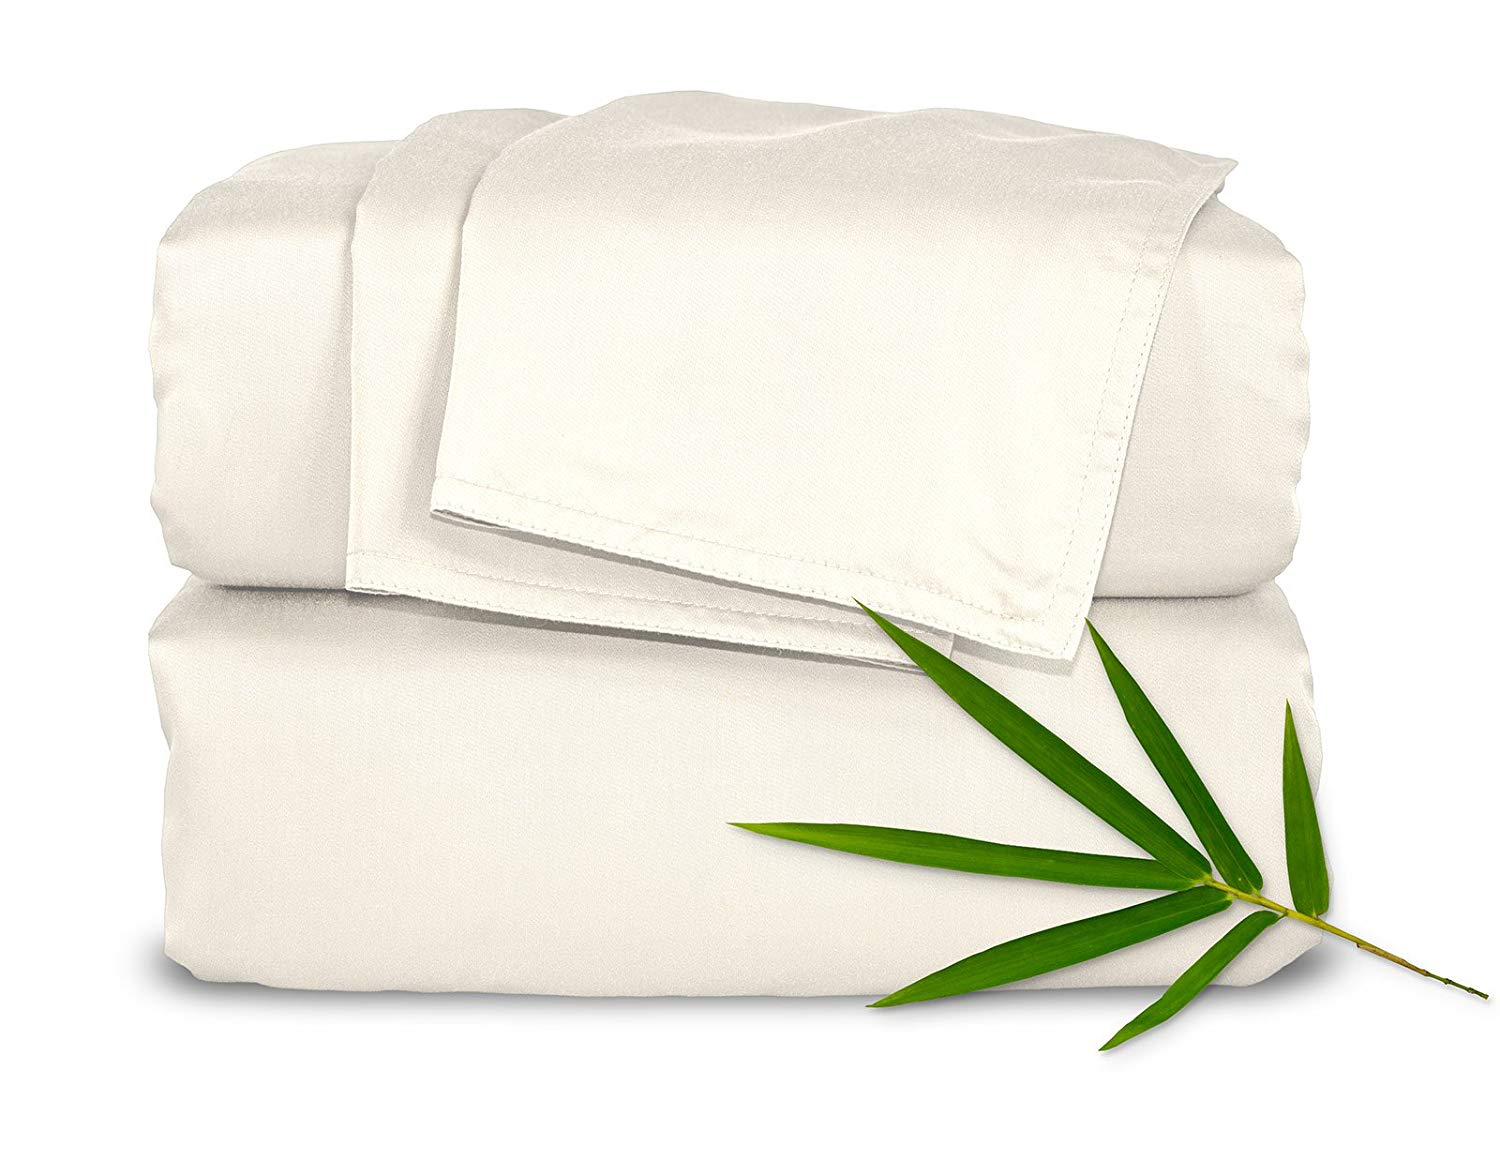 Pure Bamboo Sheets King 4pc Bed Sheet Set - 100% Bamboo Luxuriously Soft Bed Sheets (King, Ivory)